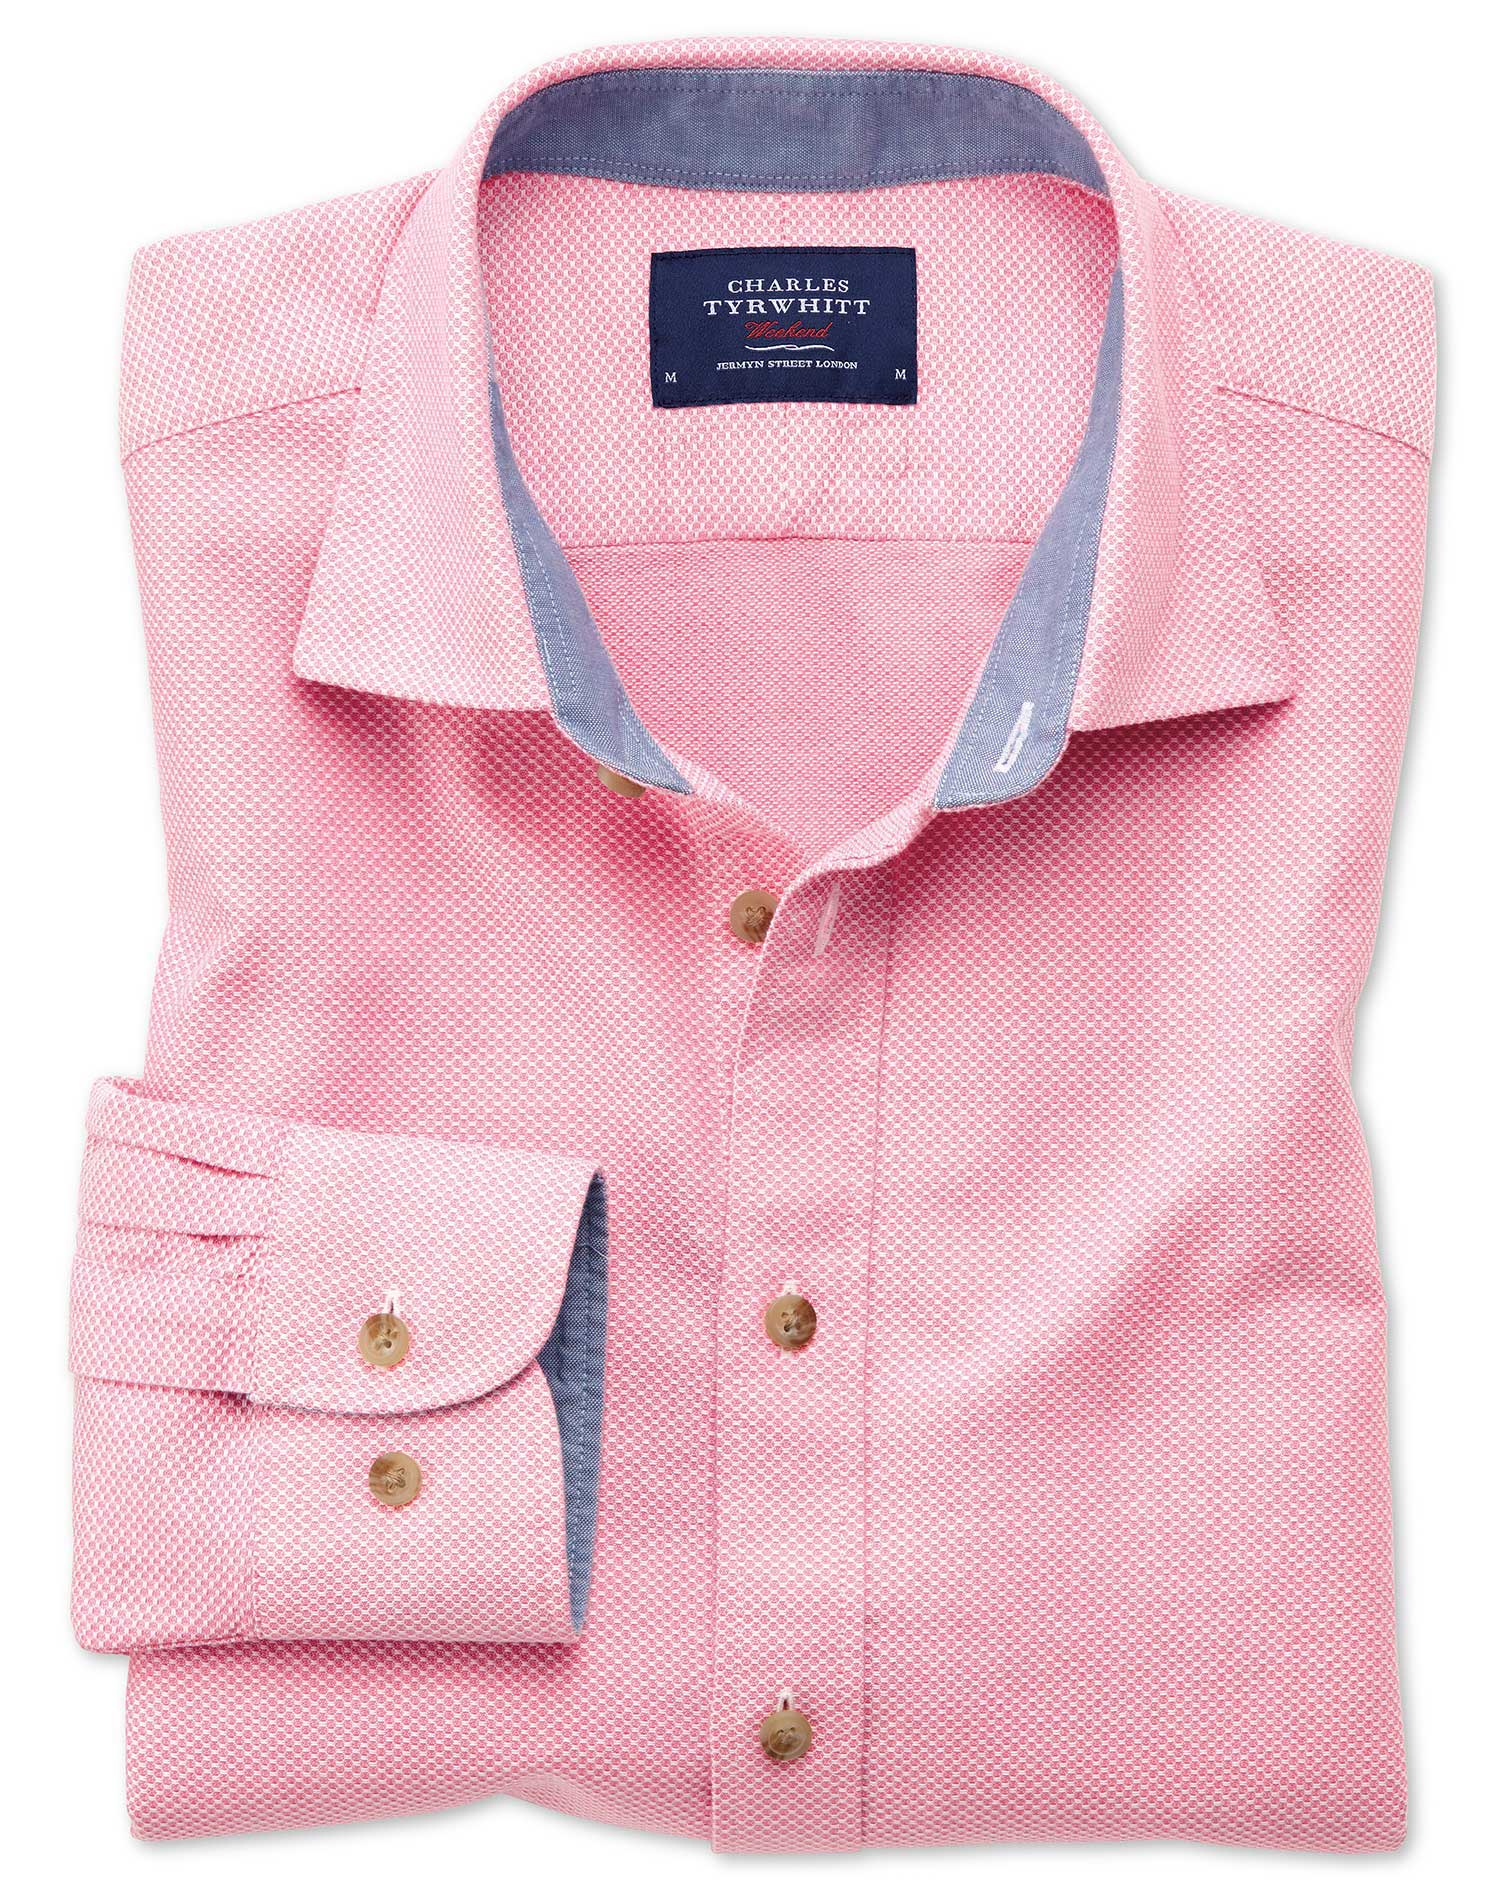 Classic Fit Washed Textured Pink Cotton Shirt Single Cuff Size Large by Charles Tyrwhitt